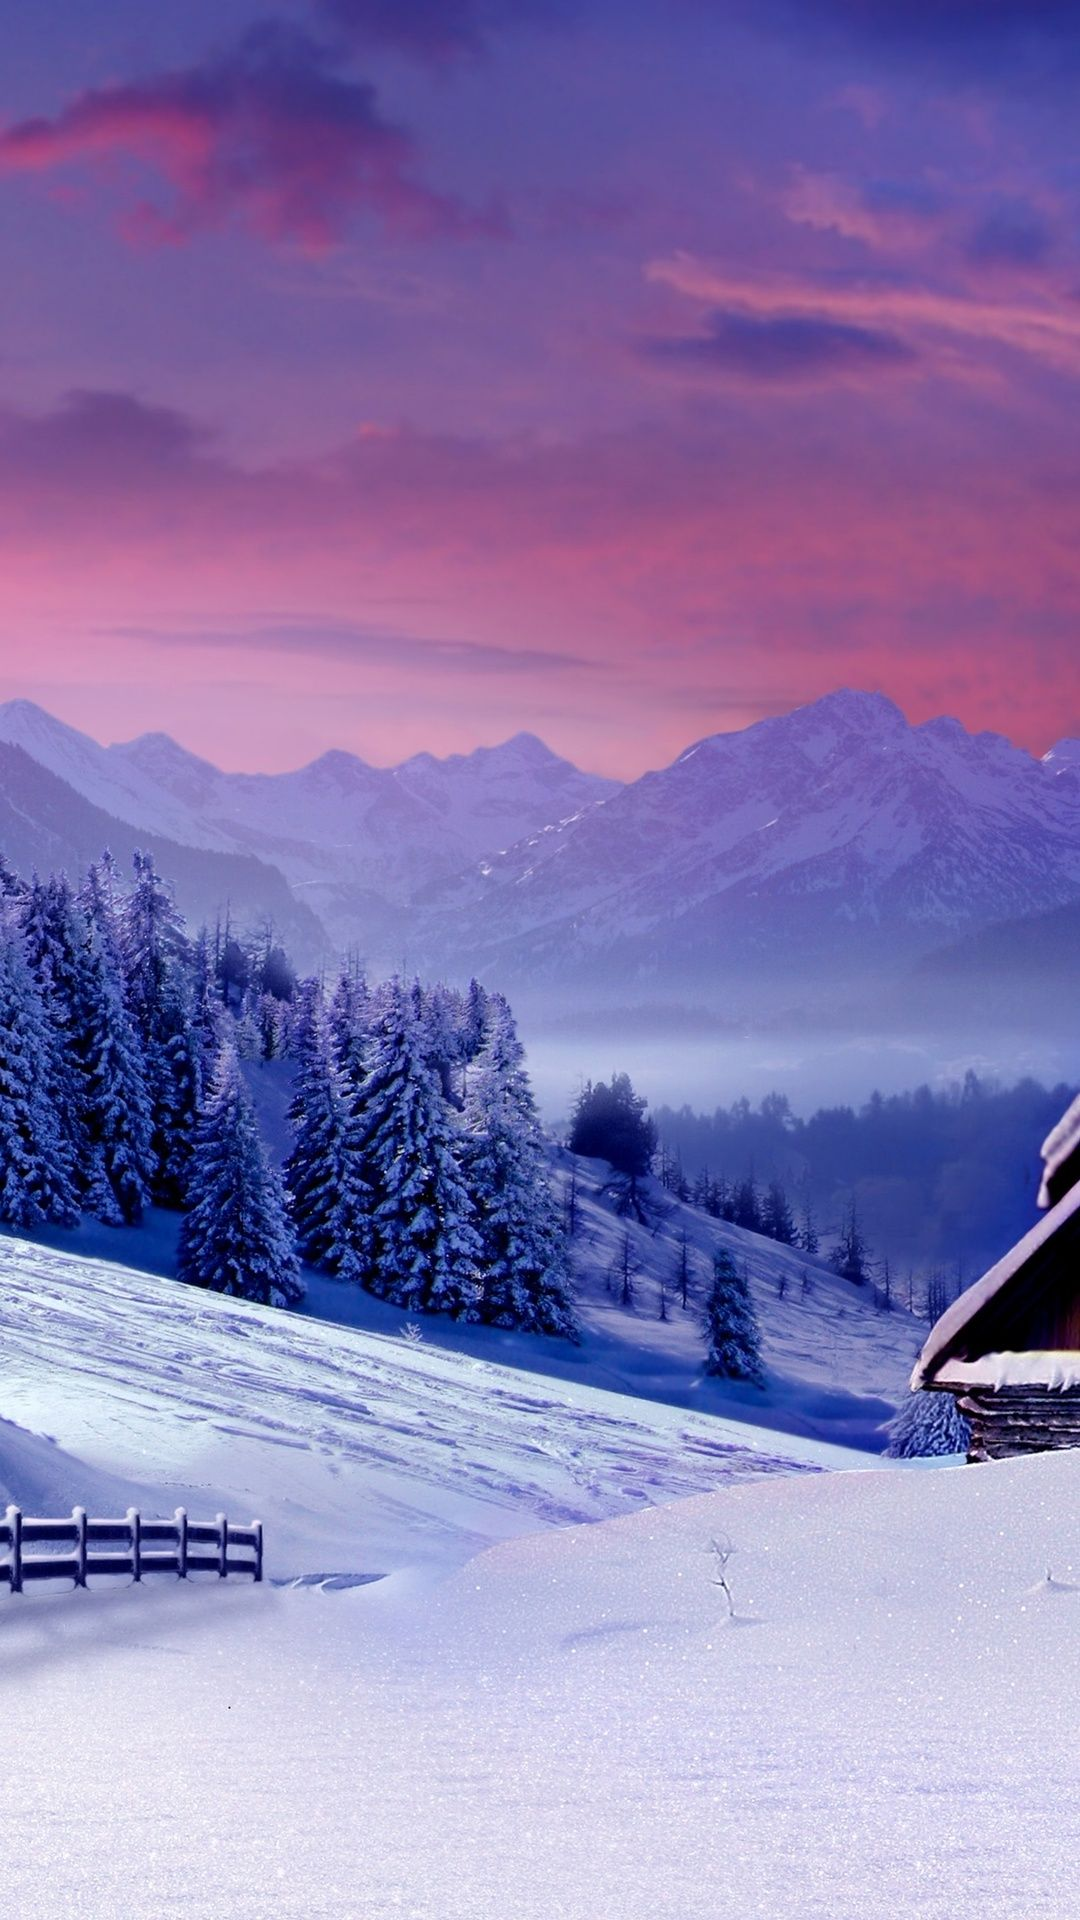 Winter Landscape 4k Ultra Hd Wallpaper 4k Wallpaper Net Iphone Wallpaper Winter Winter Iphone Winter Landscape